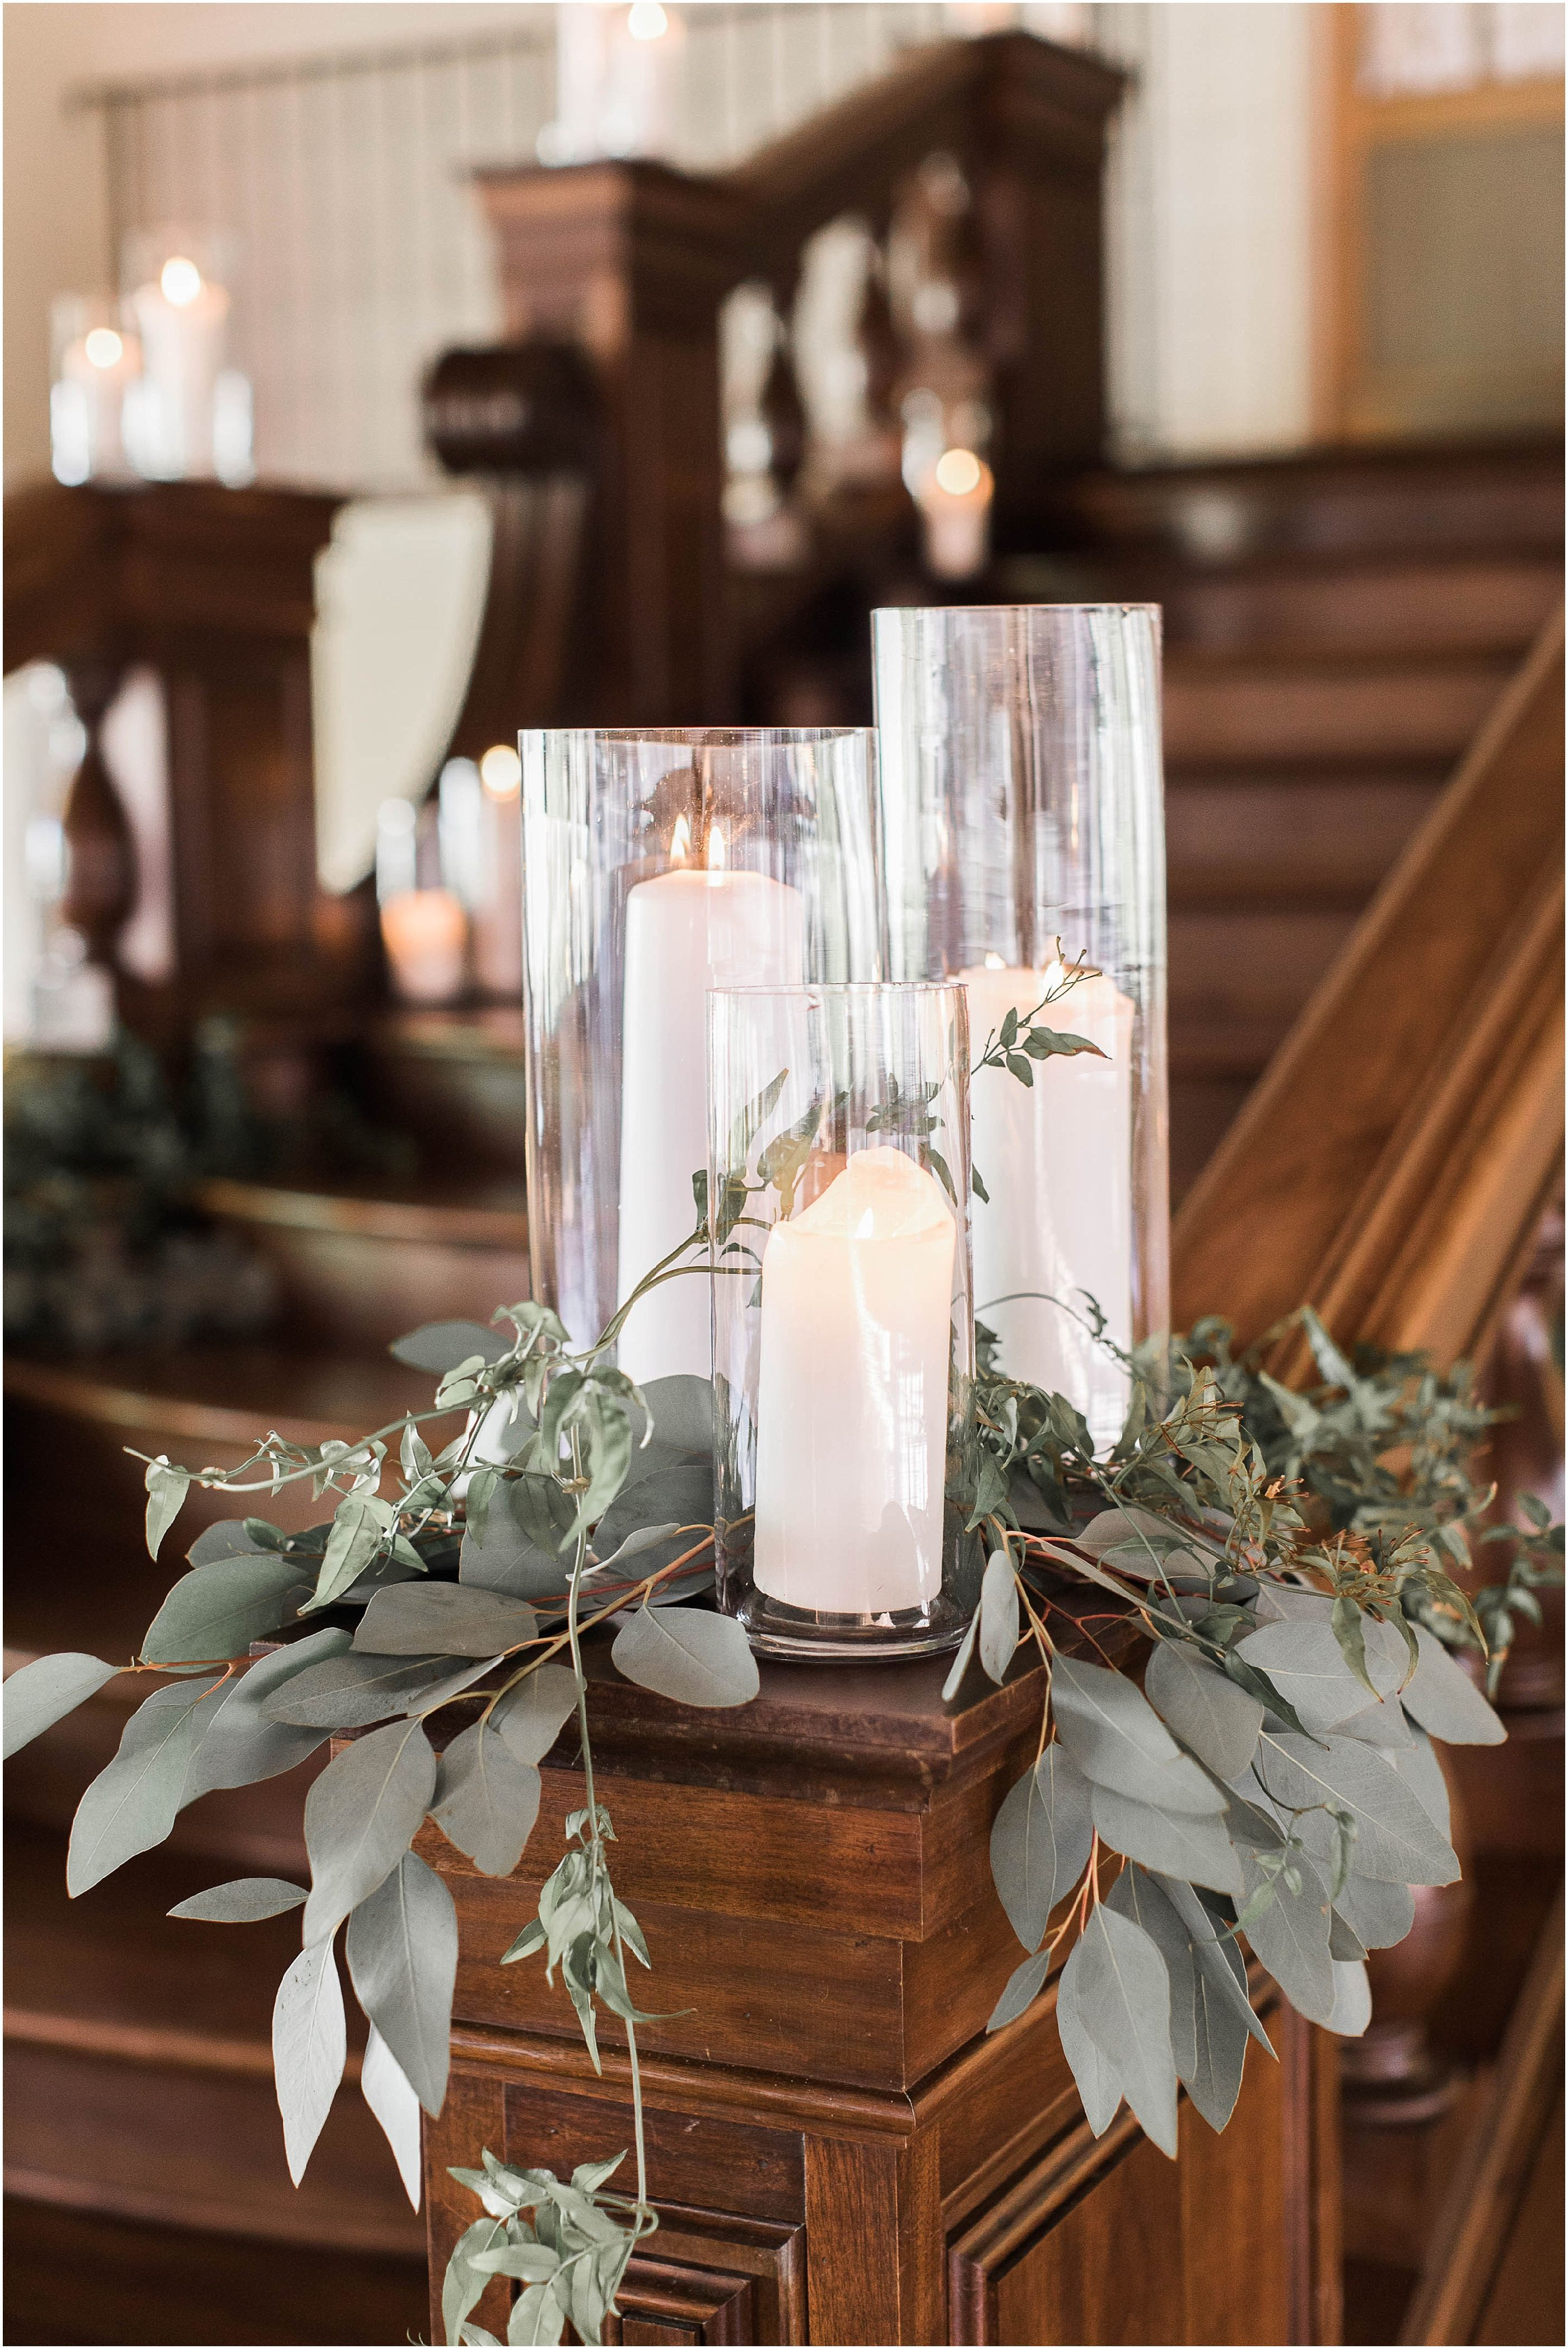 White Pillar Candles In Hurricanes And Gold Details Wedding Decor